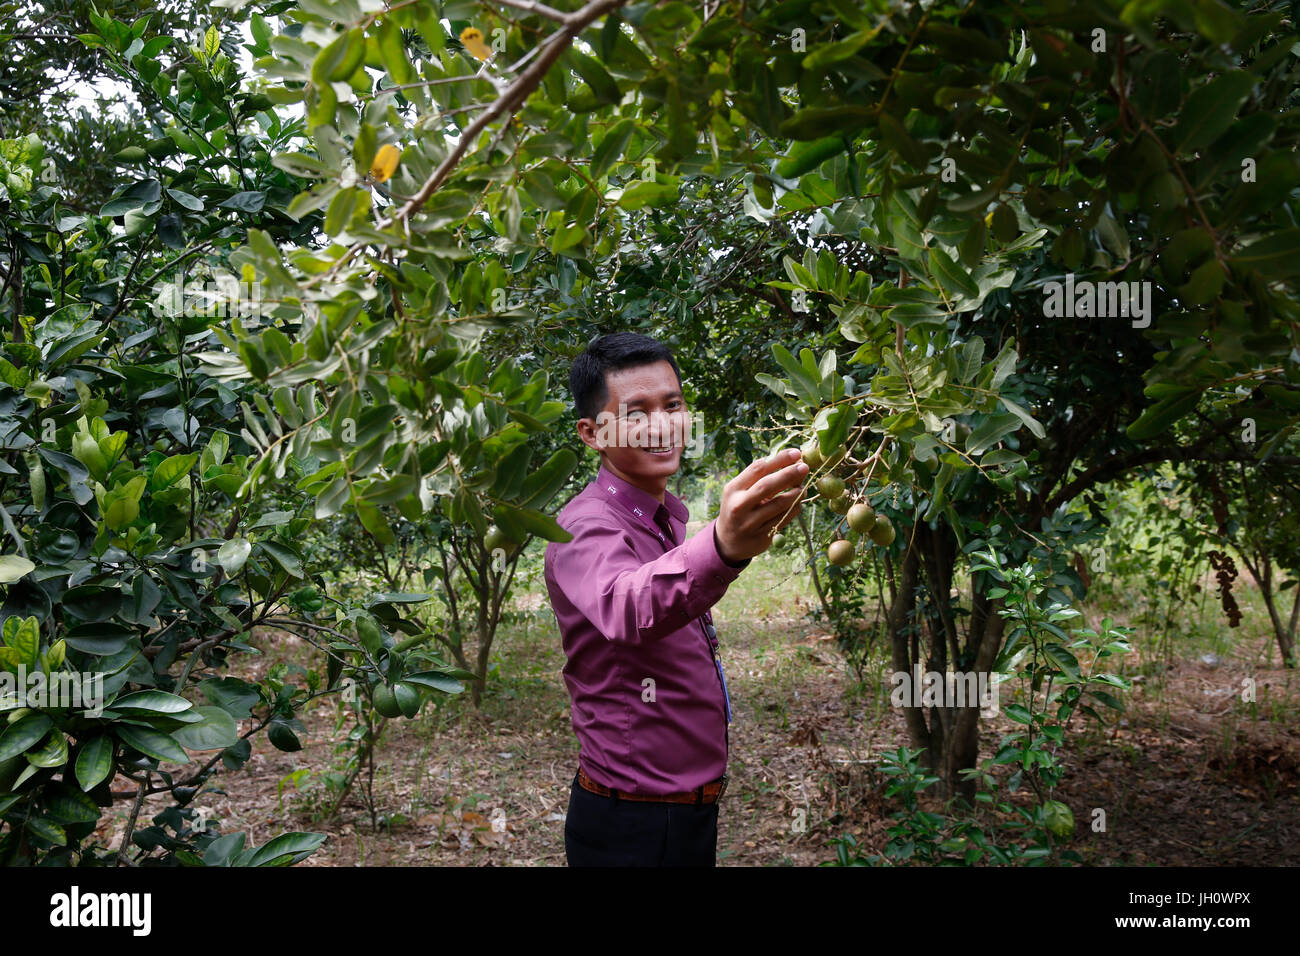 Tor Chanratana, AMK microfinance branch manager, in a client's orchard. Cambodia. - Stock Image